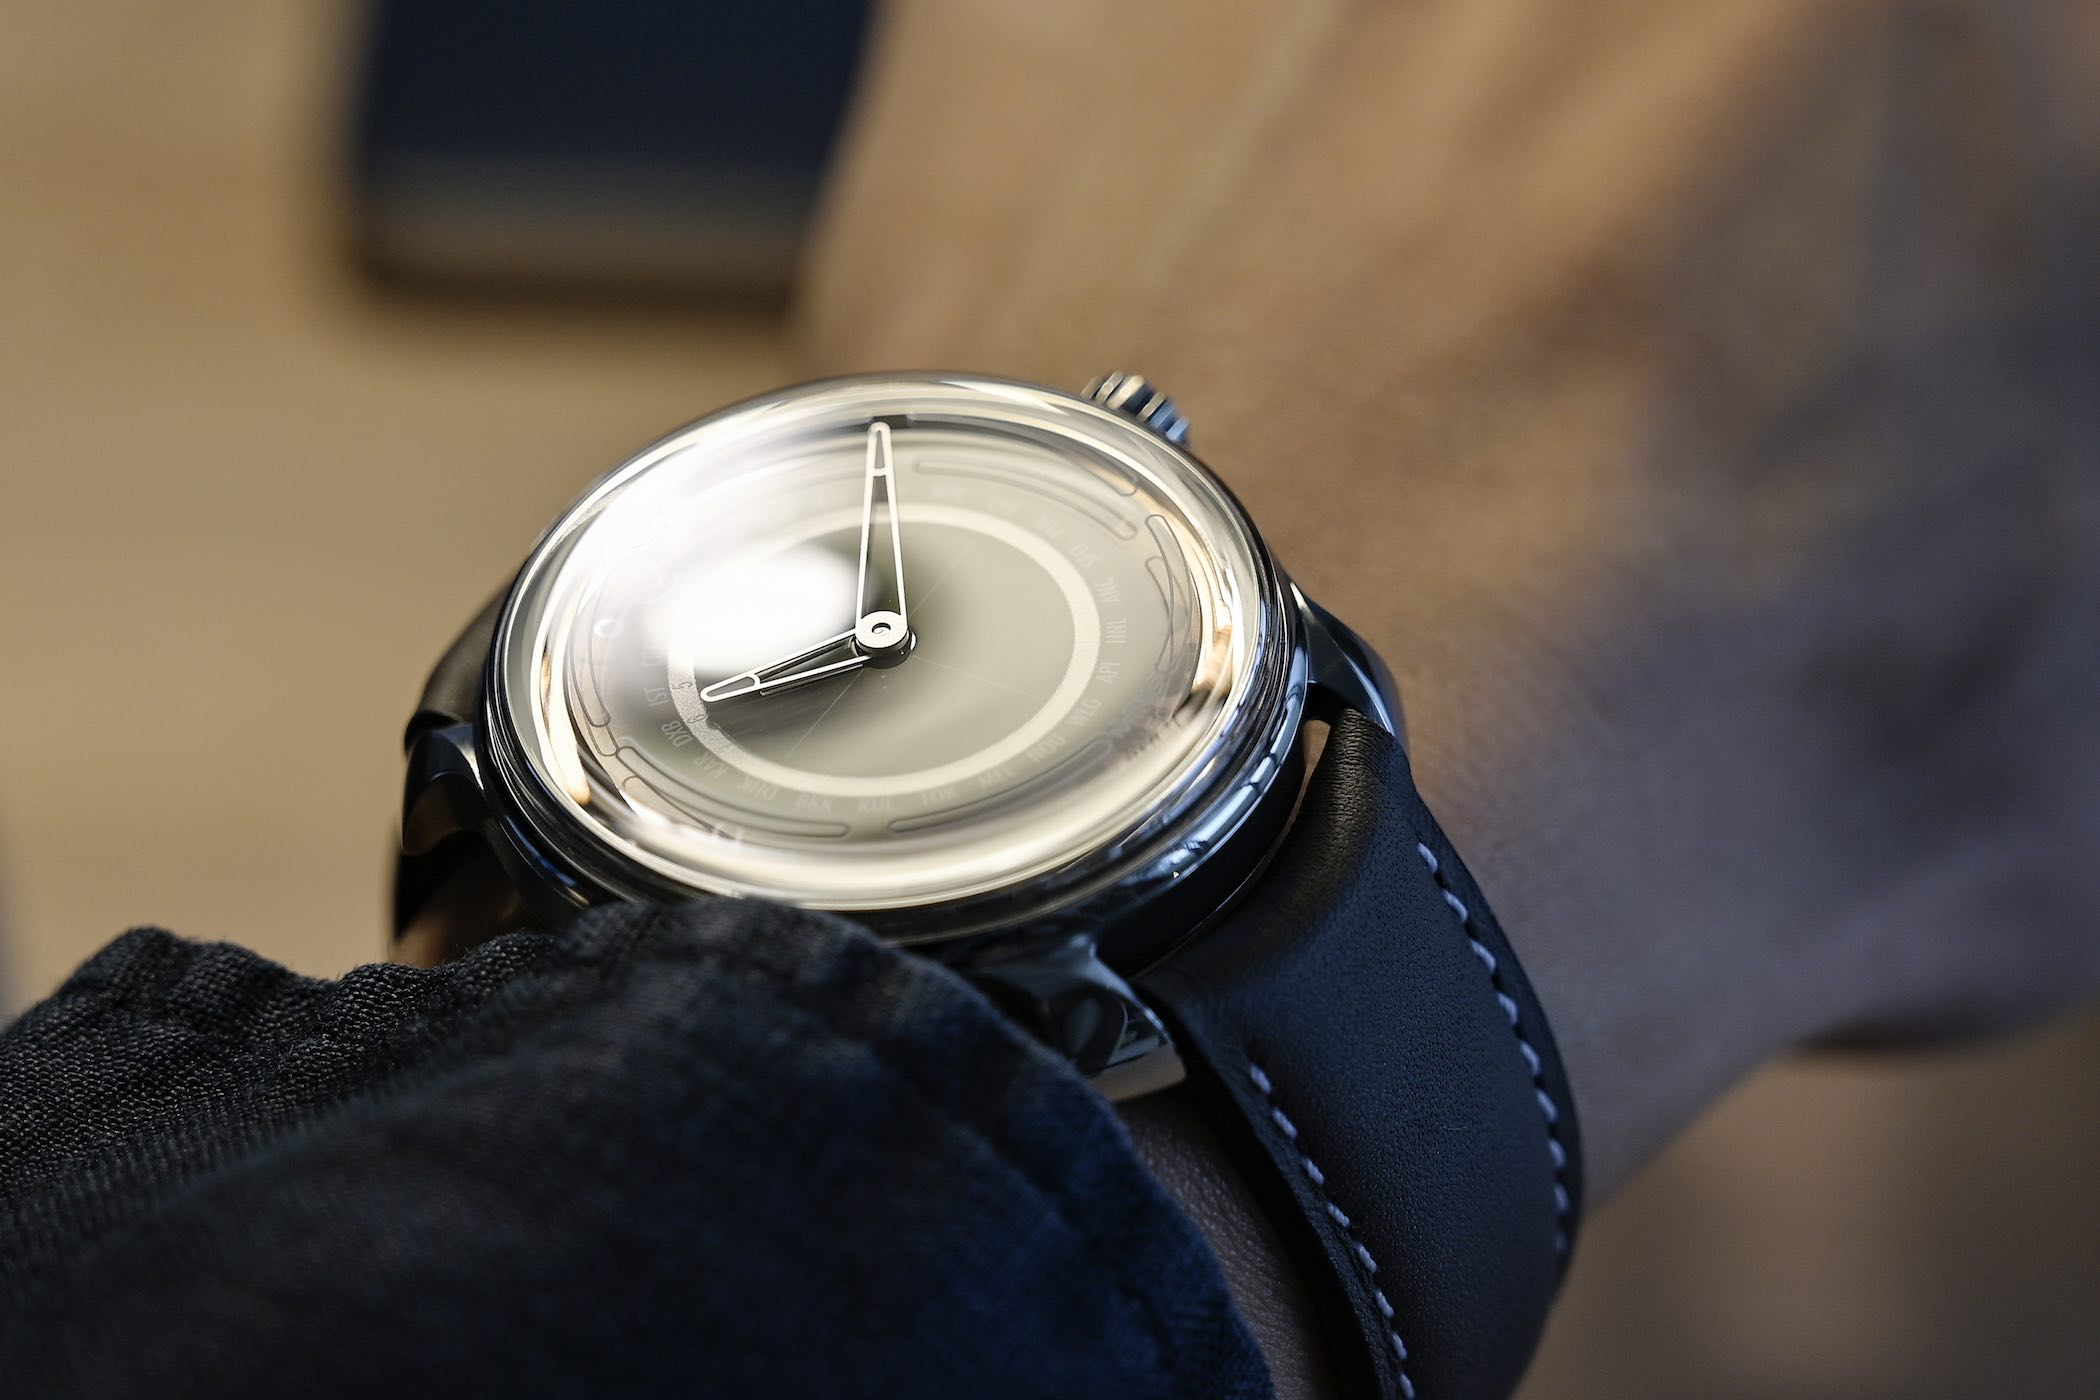 MING 19.02 Worldtimer With Schwarz Etienne Automatic Micro-Rotor Movement - 3